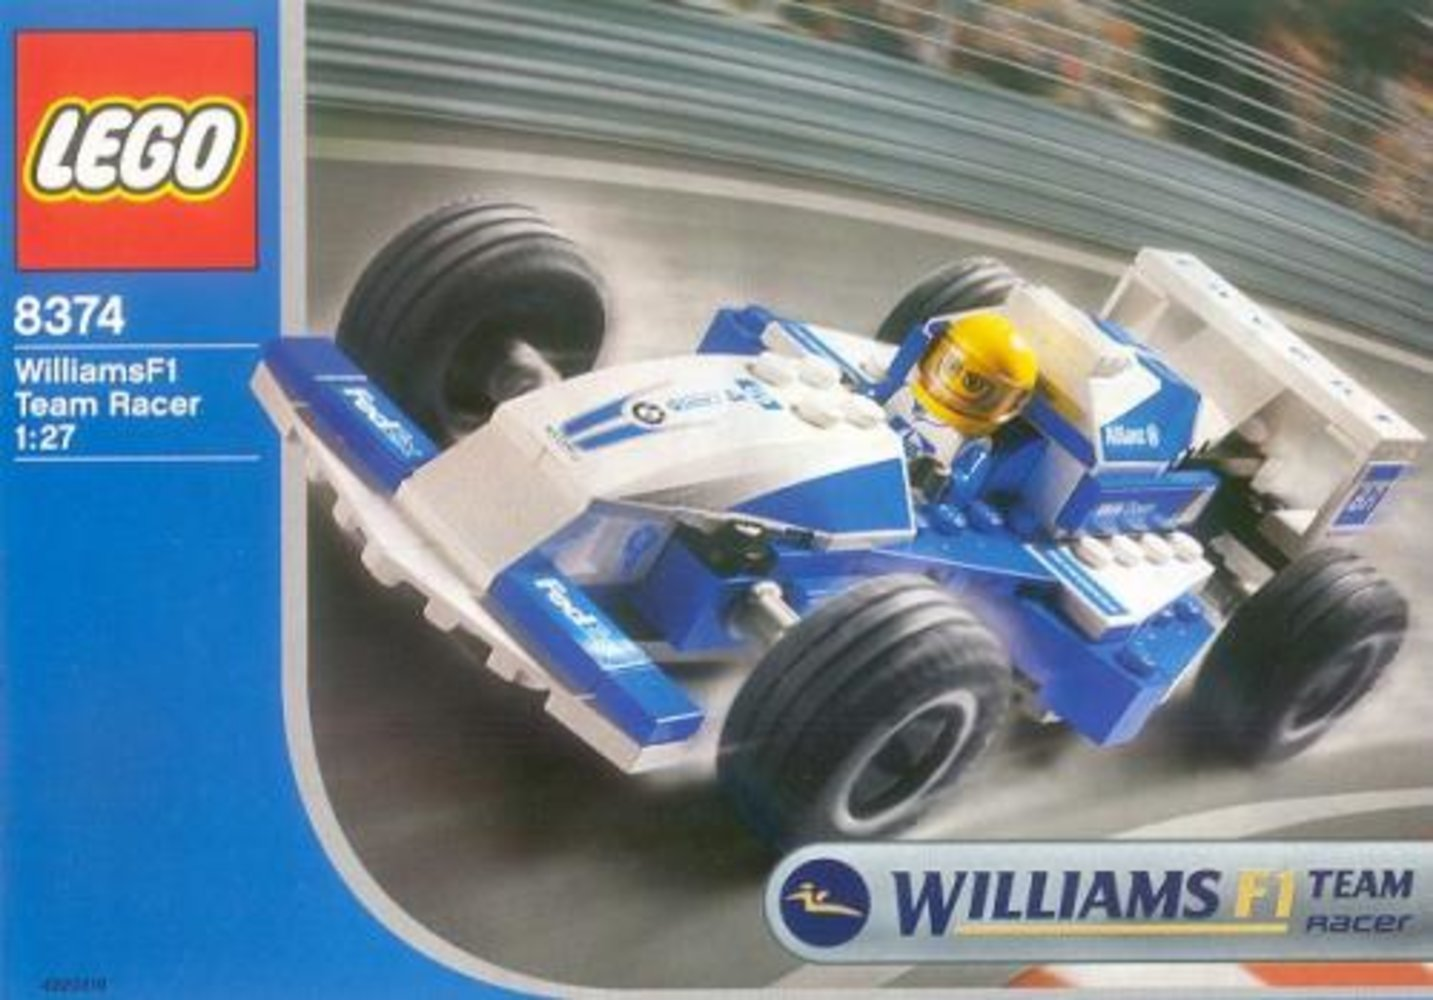 Williams F1 Team Racer 1:27